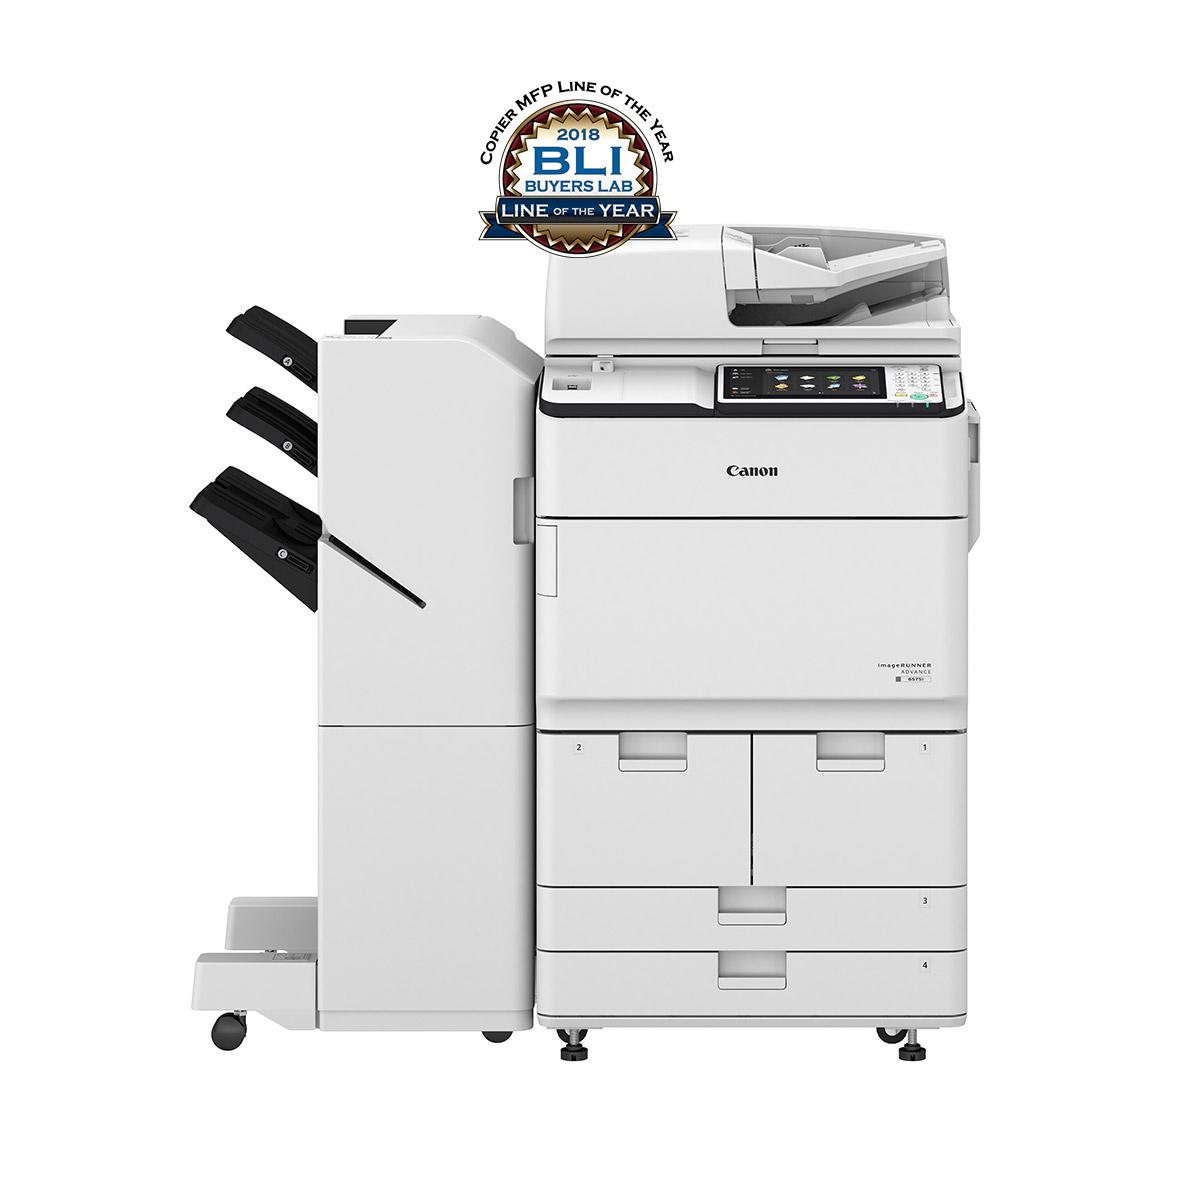 Canon imageRUNNER ADVANCE 6500i Series Multifunction Printer